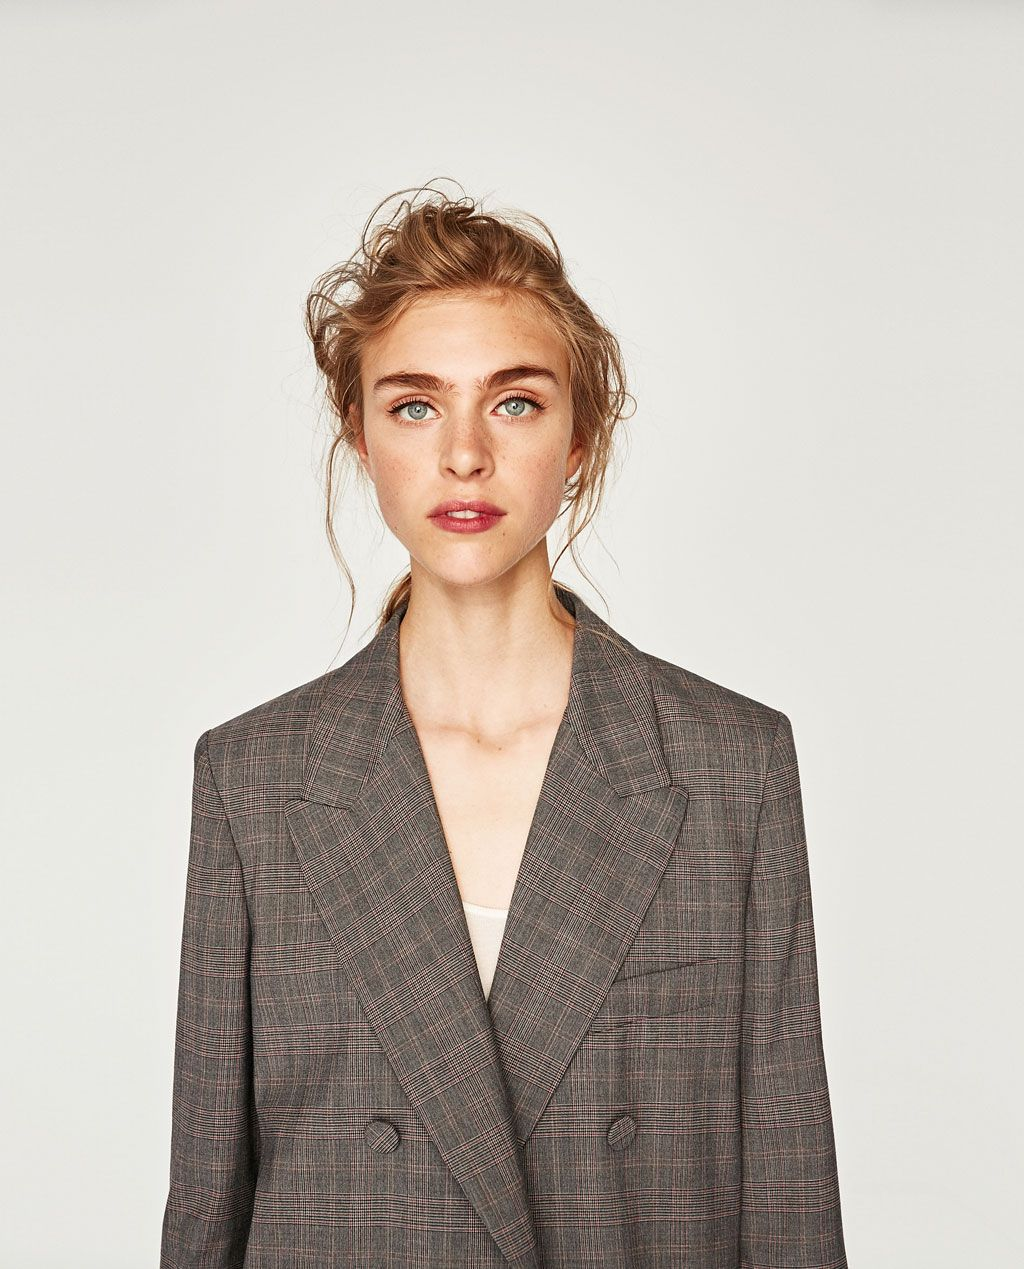 big sale 495bf ffbc9 VESTE CROISÉE À BOUTONS REVÊTUS-BLAZERS-FEMME-COLLECTION AW 17   ZARA France